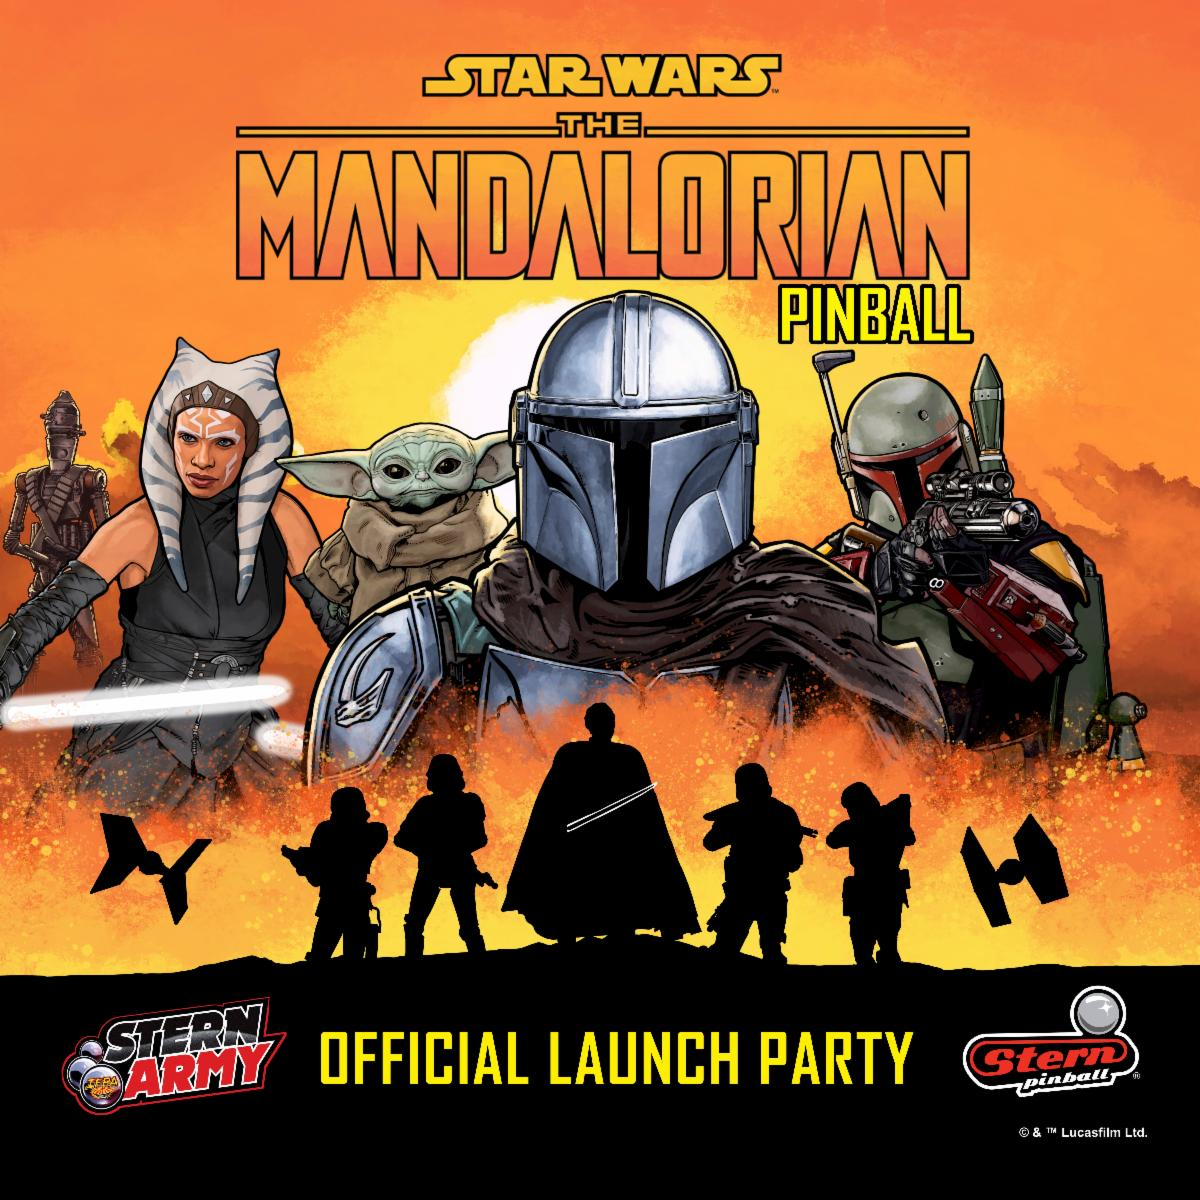 Official launch party for The Mandalorian Pinball